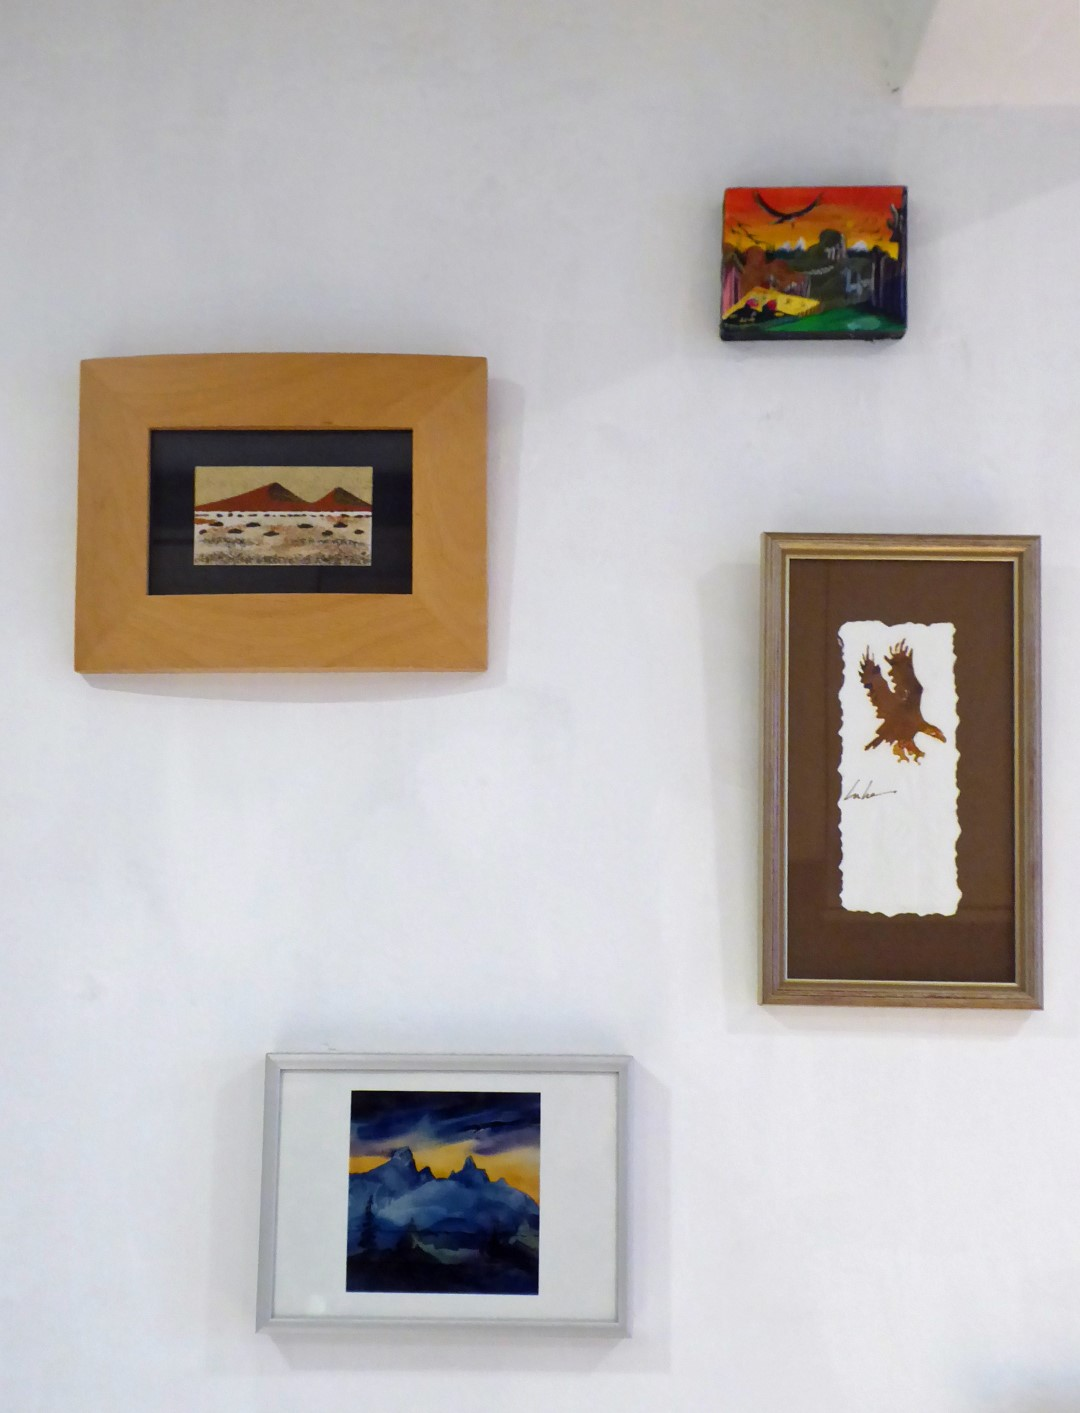 Small paintings on a wall